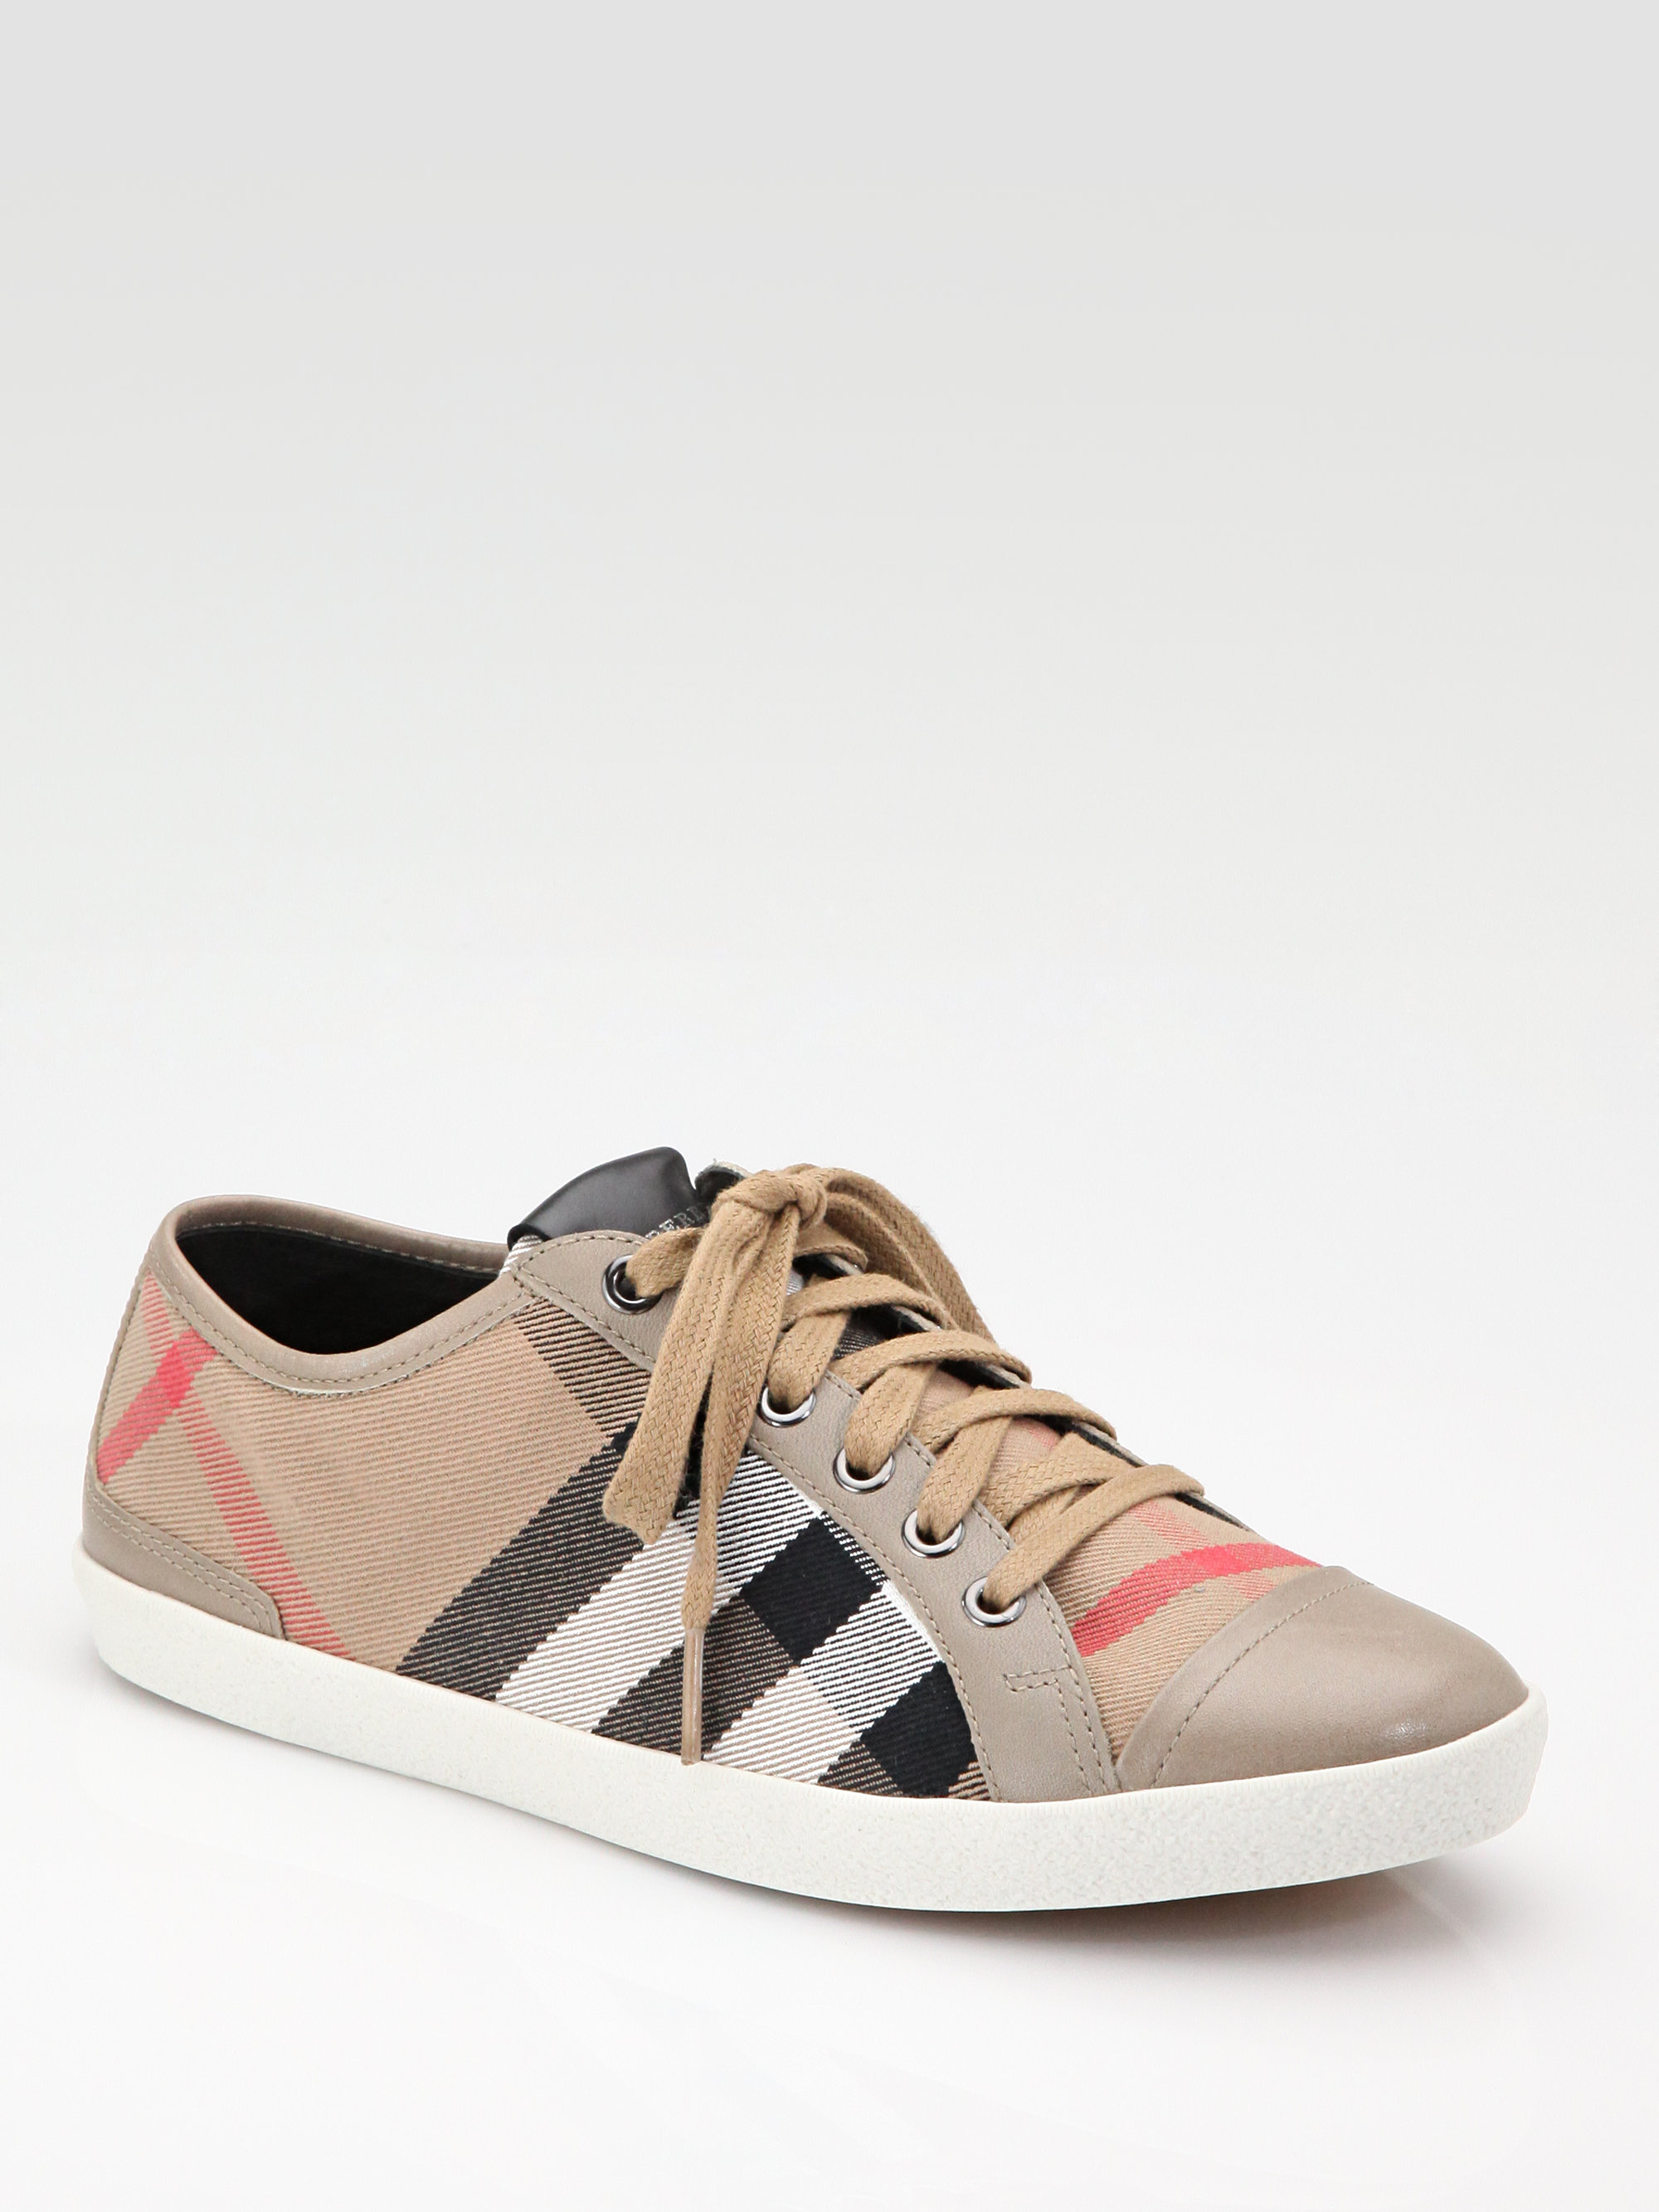 Cheap Burberry Shoes For Women